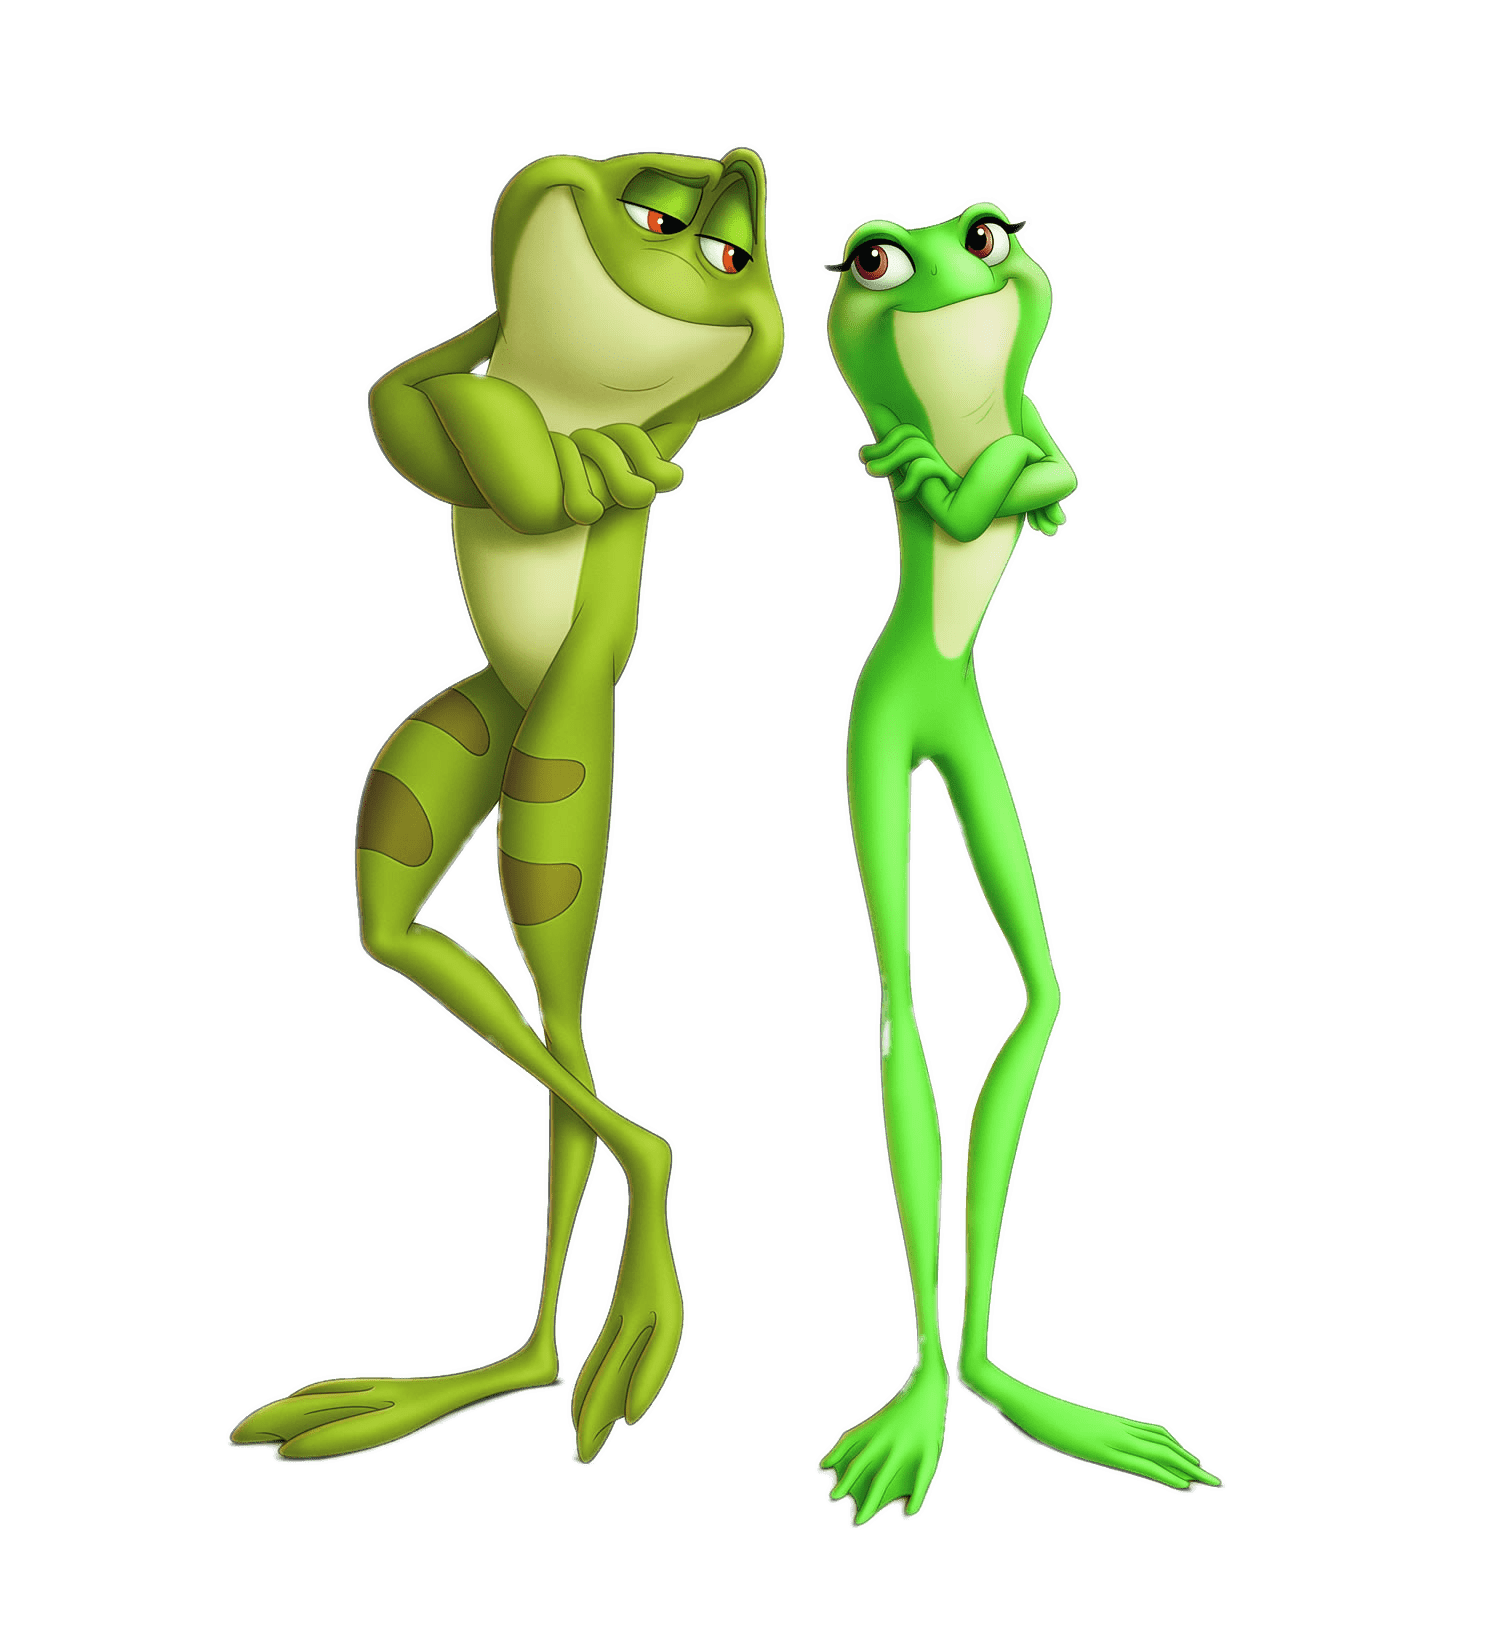 Princess and the frog png. Transparent stickpng download